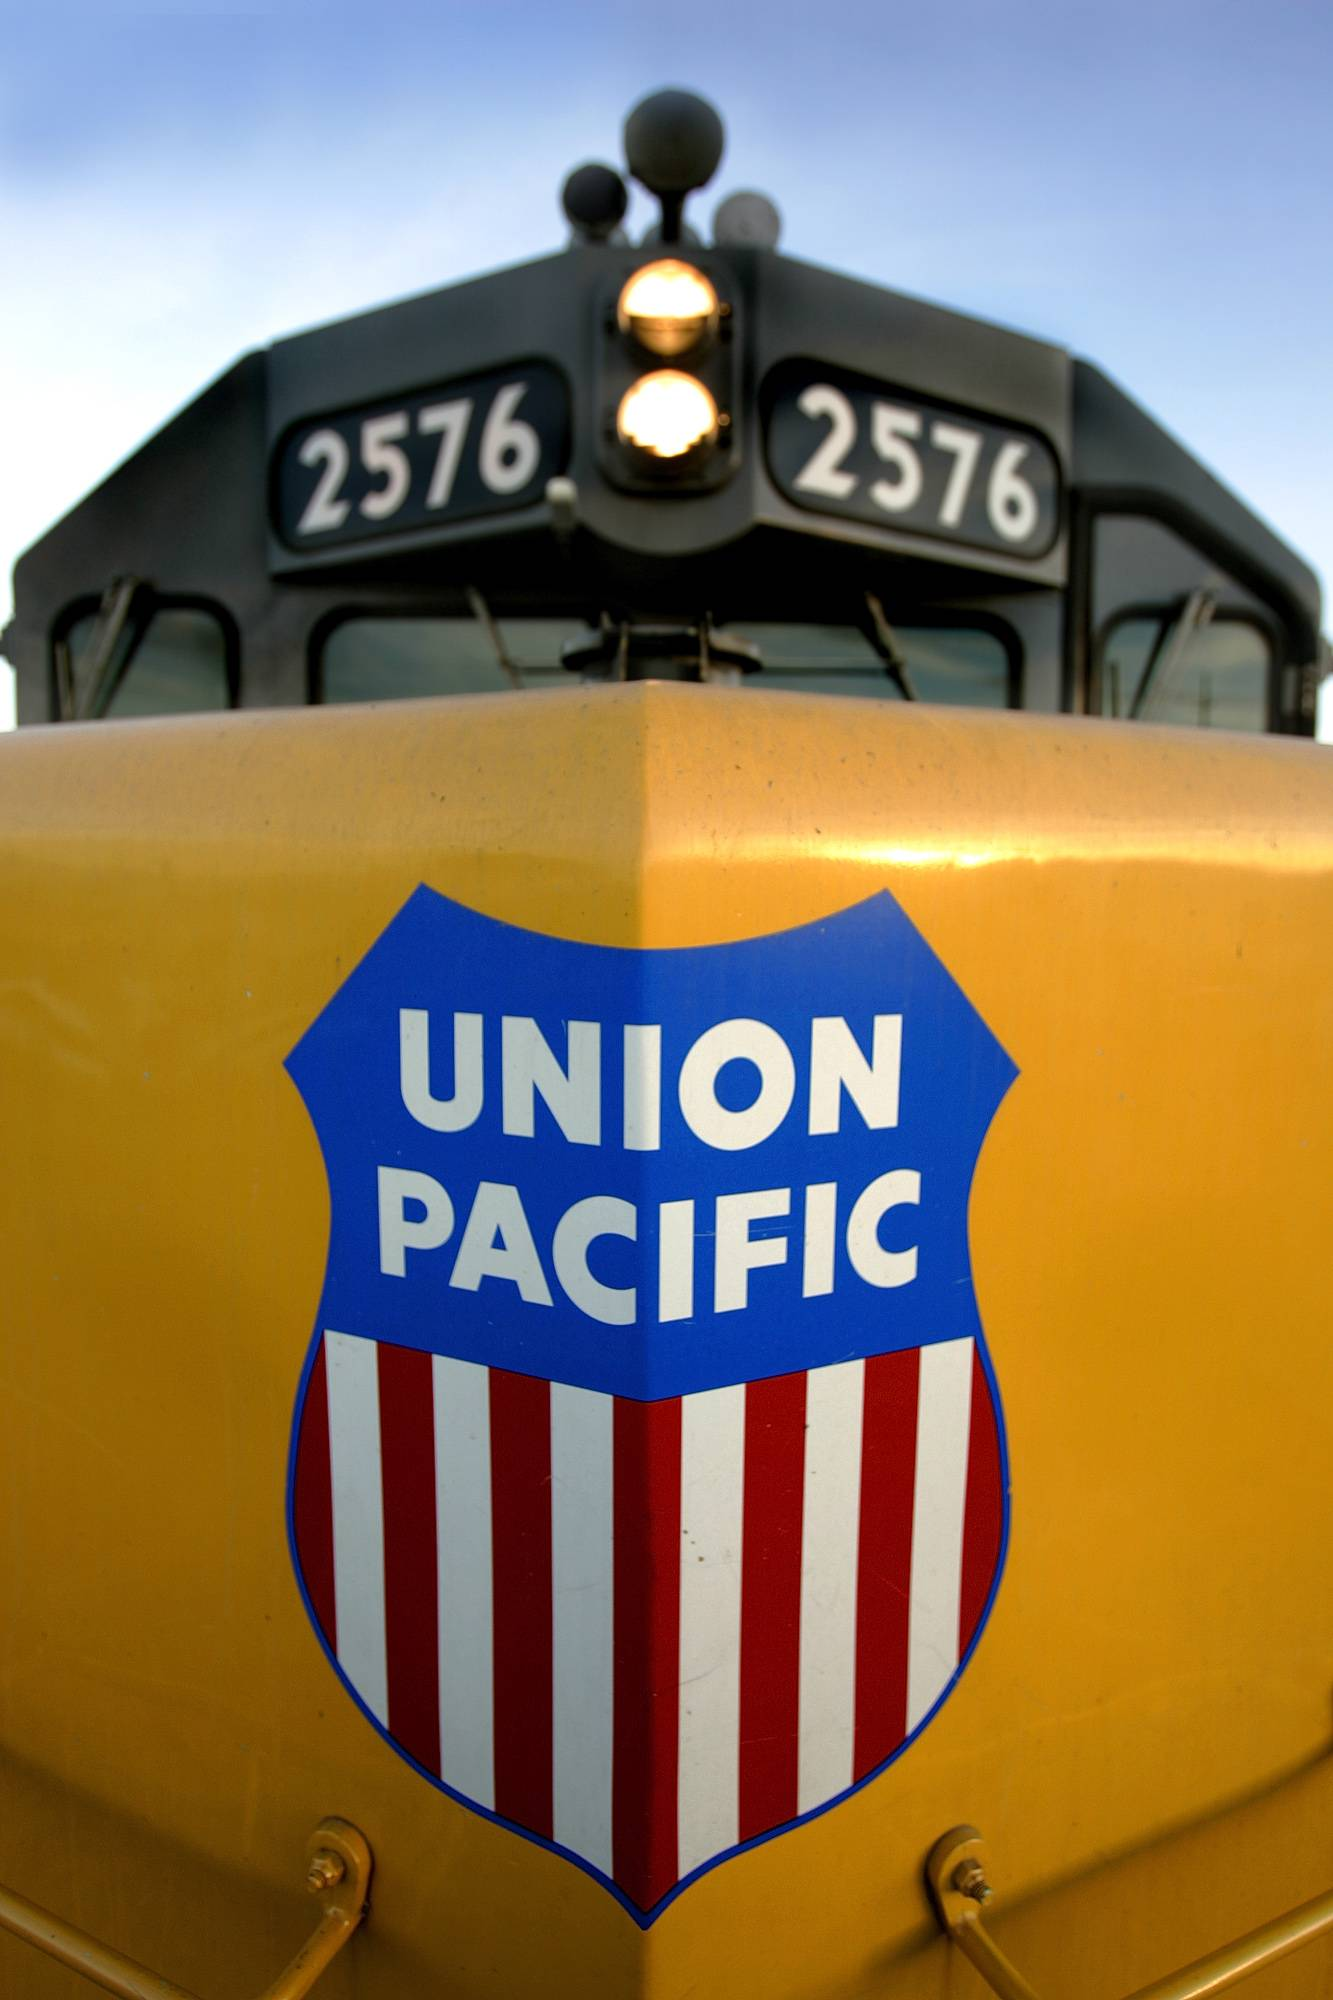 The harsh winter didn't keep Union Pacific railroad from delivering 14 percent higher quarterly profit as it hauled more agricultural, industrial and coal shipments.